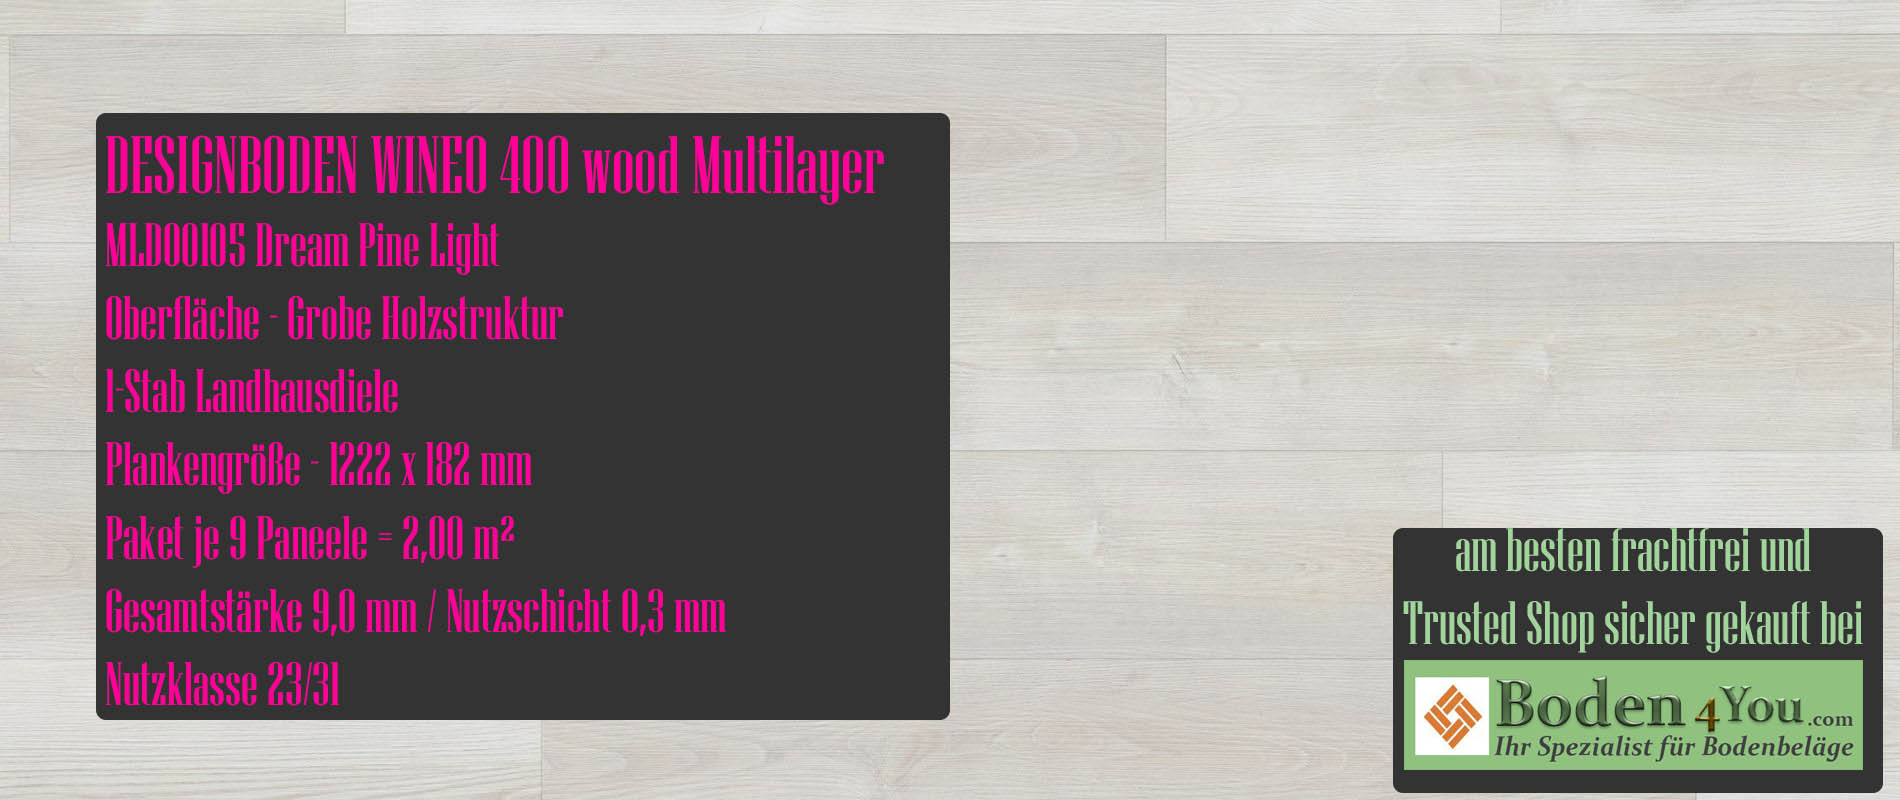 Wineo 400 Multilayer Moonlight Pine Pale @ Boden4You.com Design Bodenbelag günstig und Trsuted Shop sicher kaufen